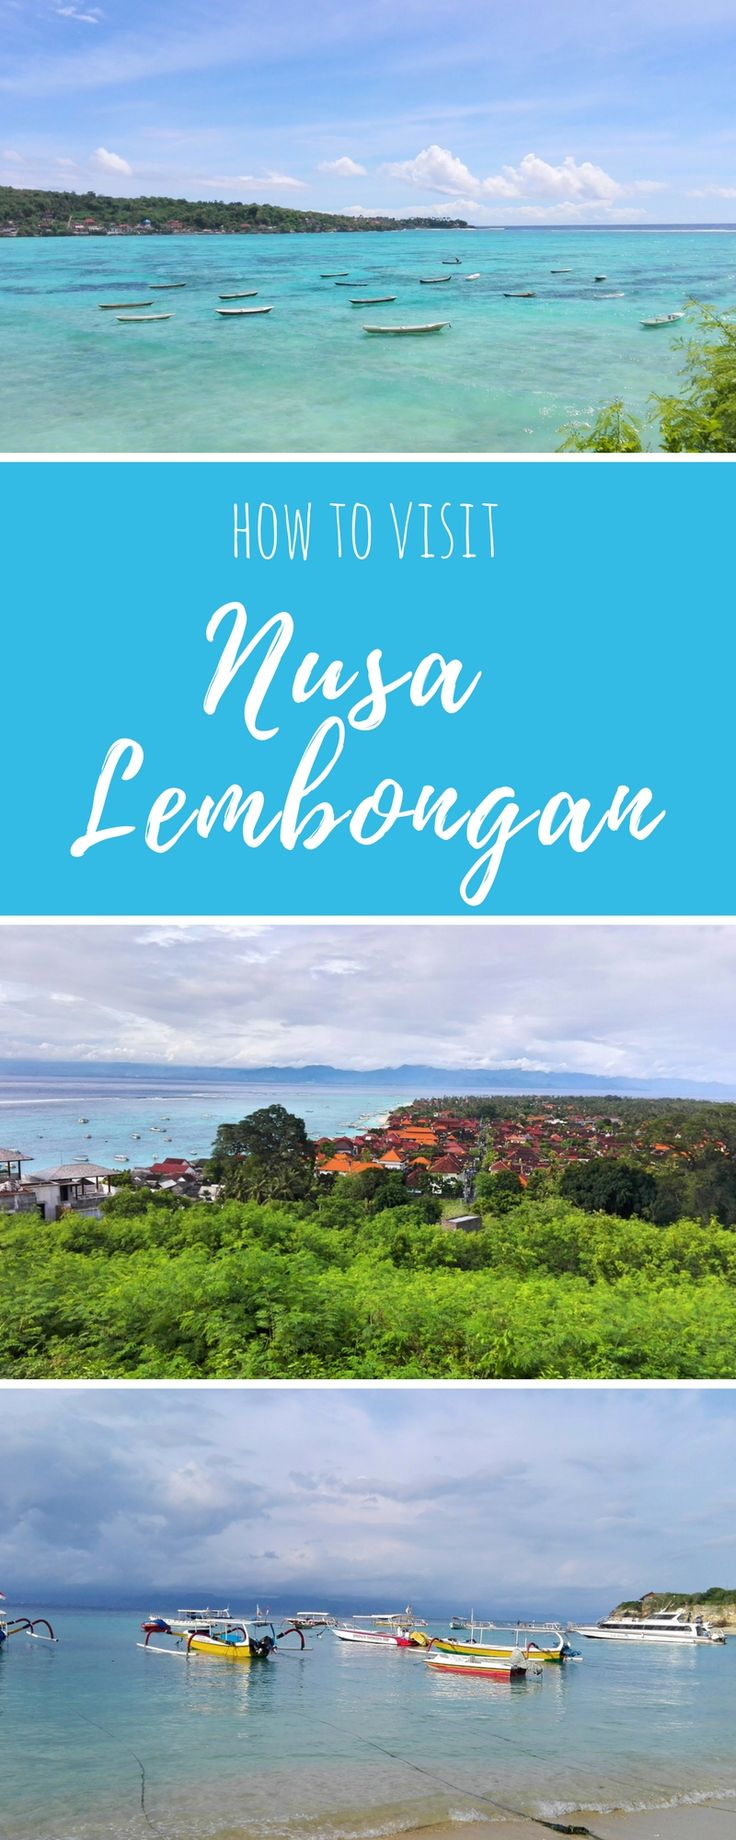 What to do in and how to visit Nusa Lembongan, Bali!